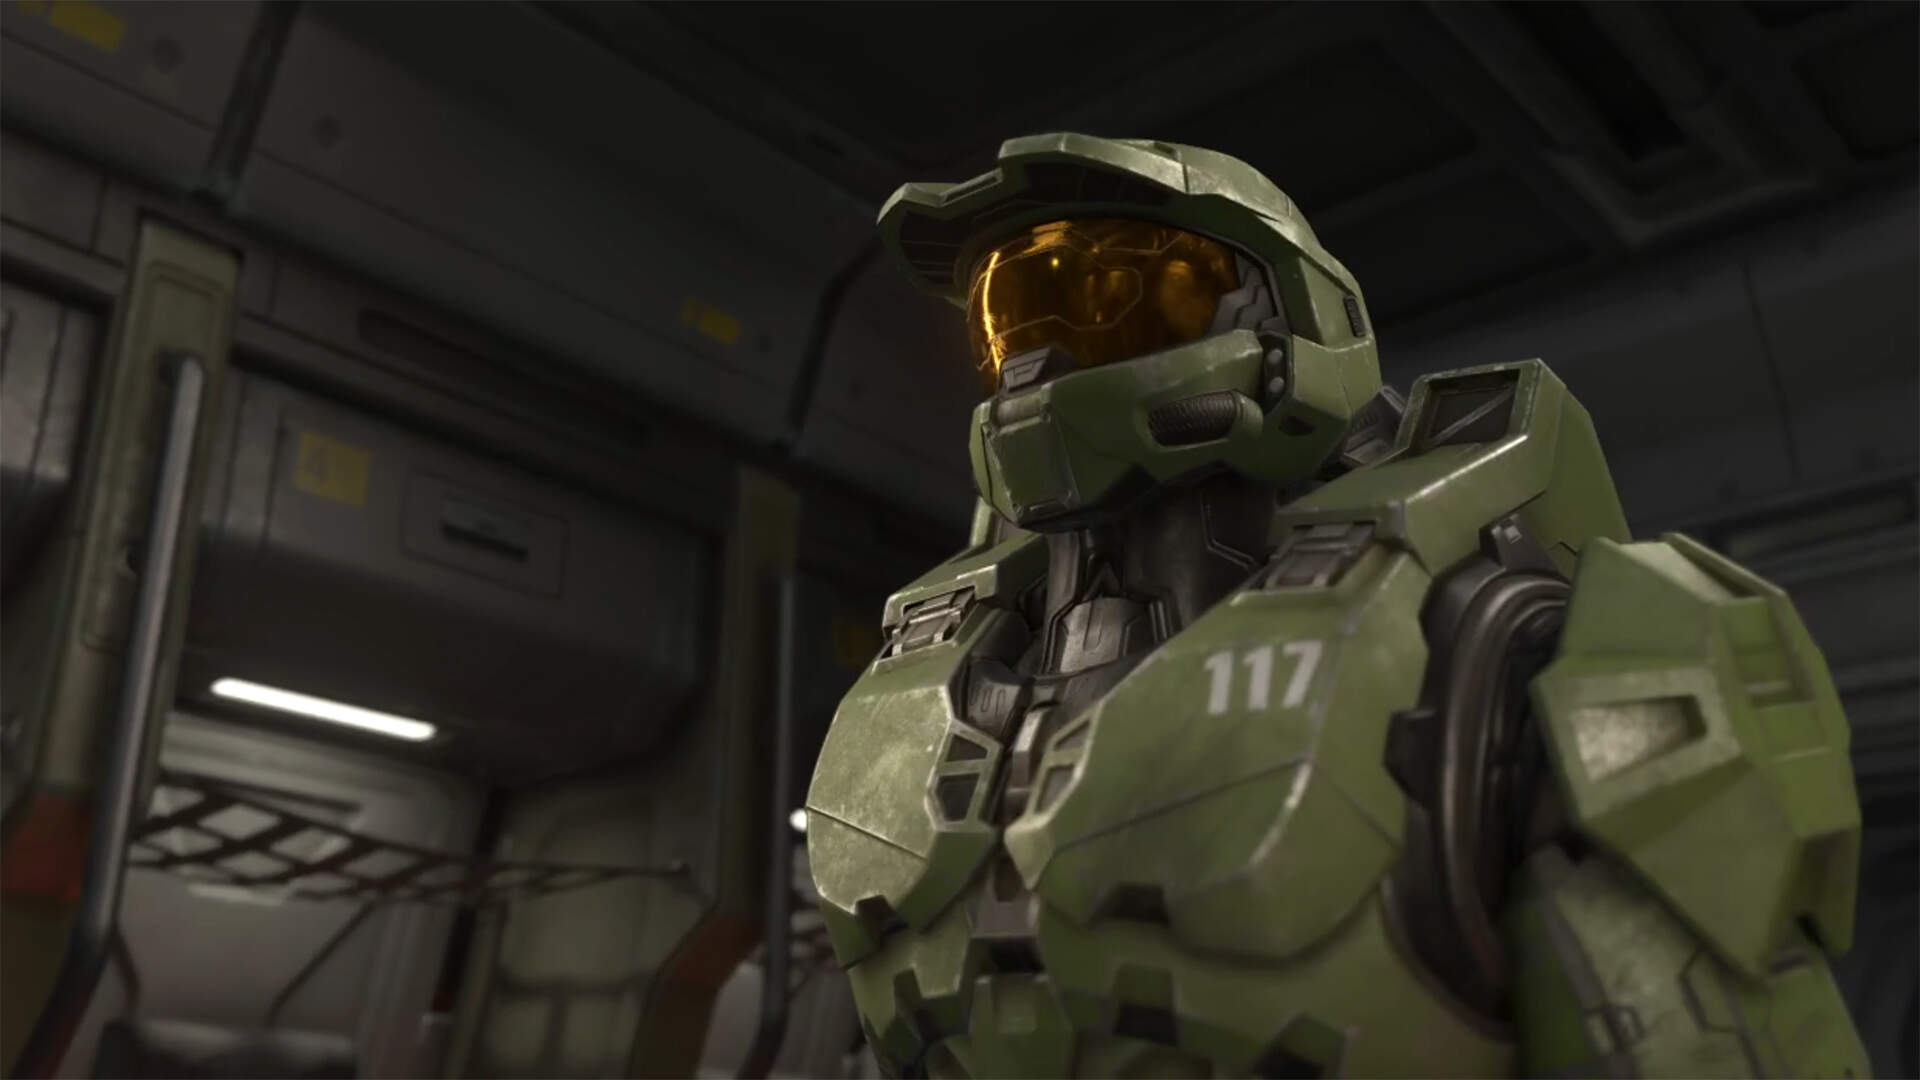 Halo Infinite Seemingly Takes Place Three Years After Halo 5: Guardians